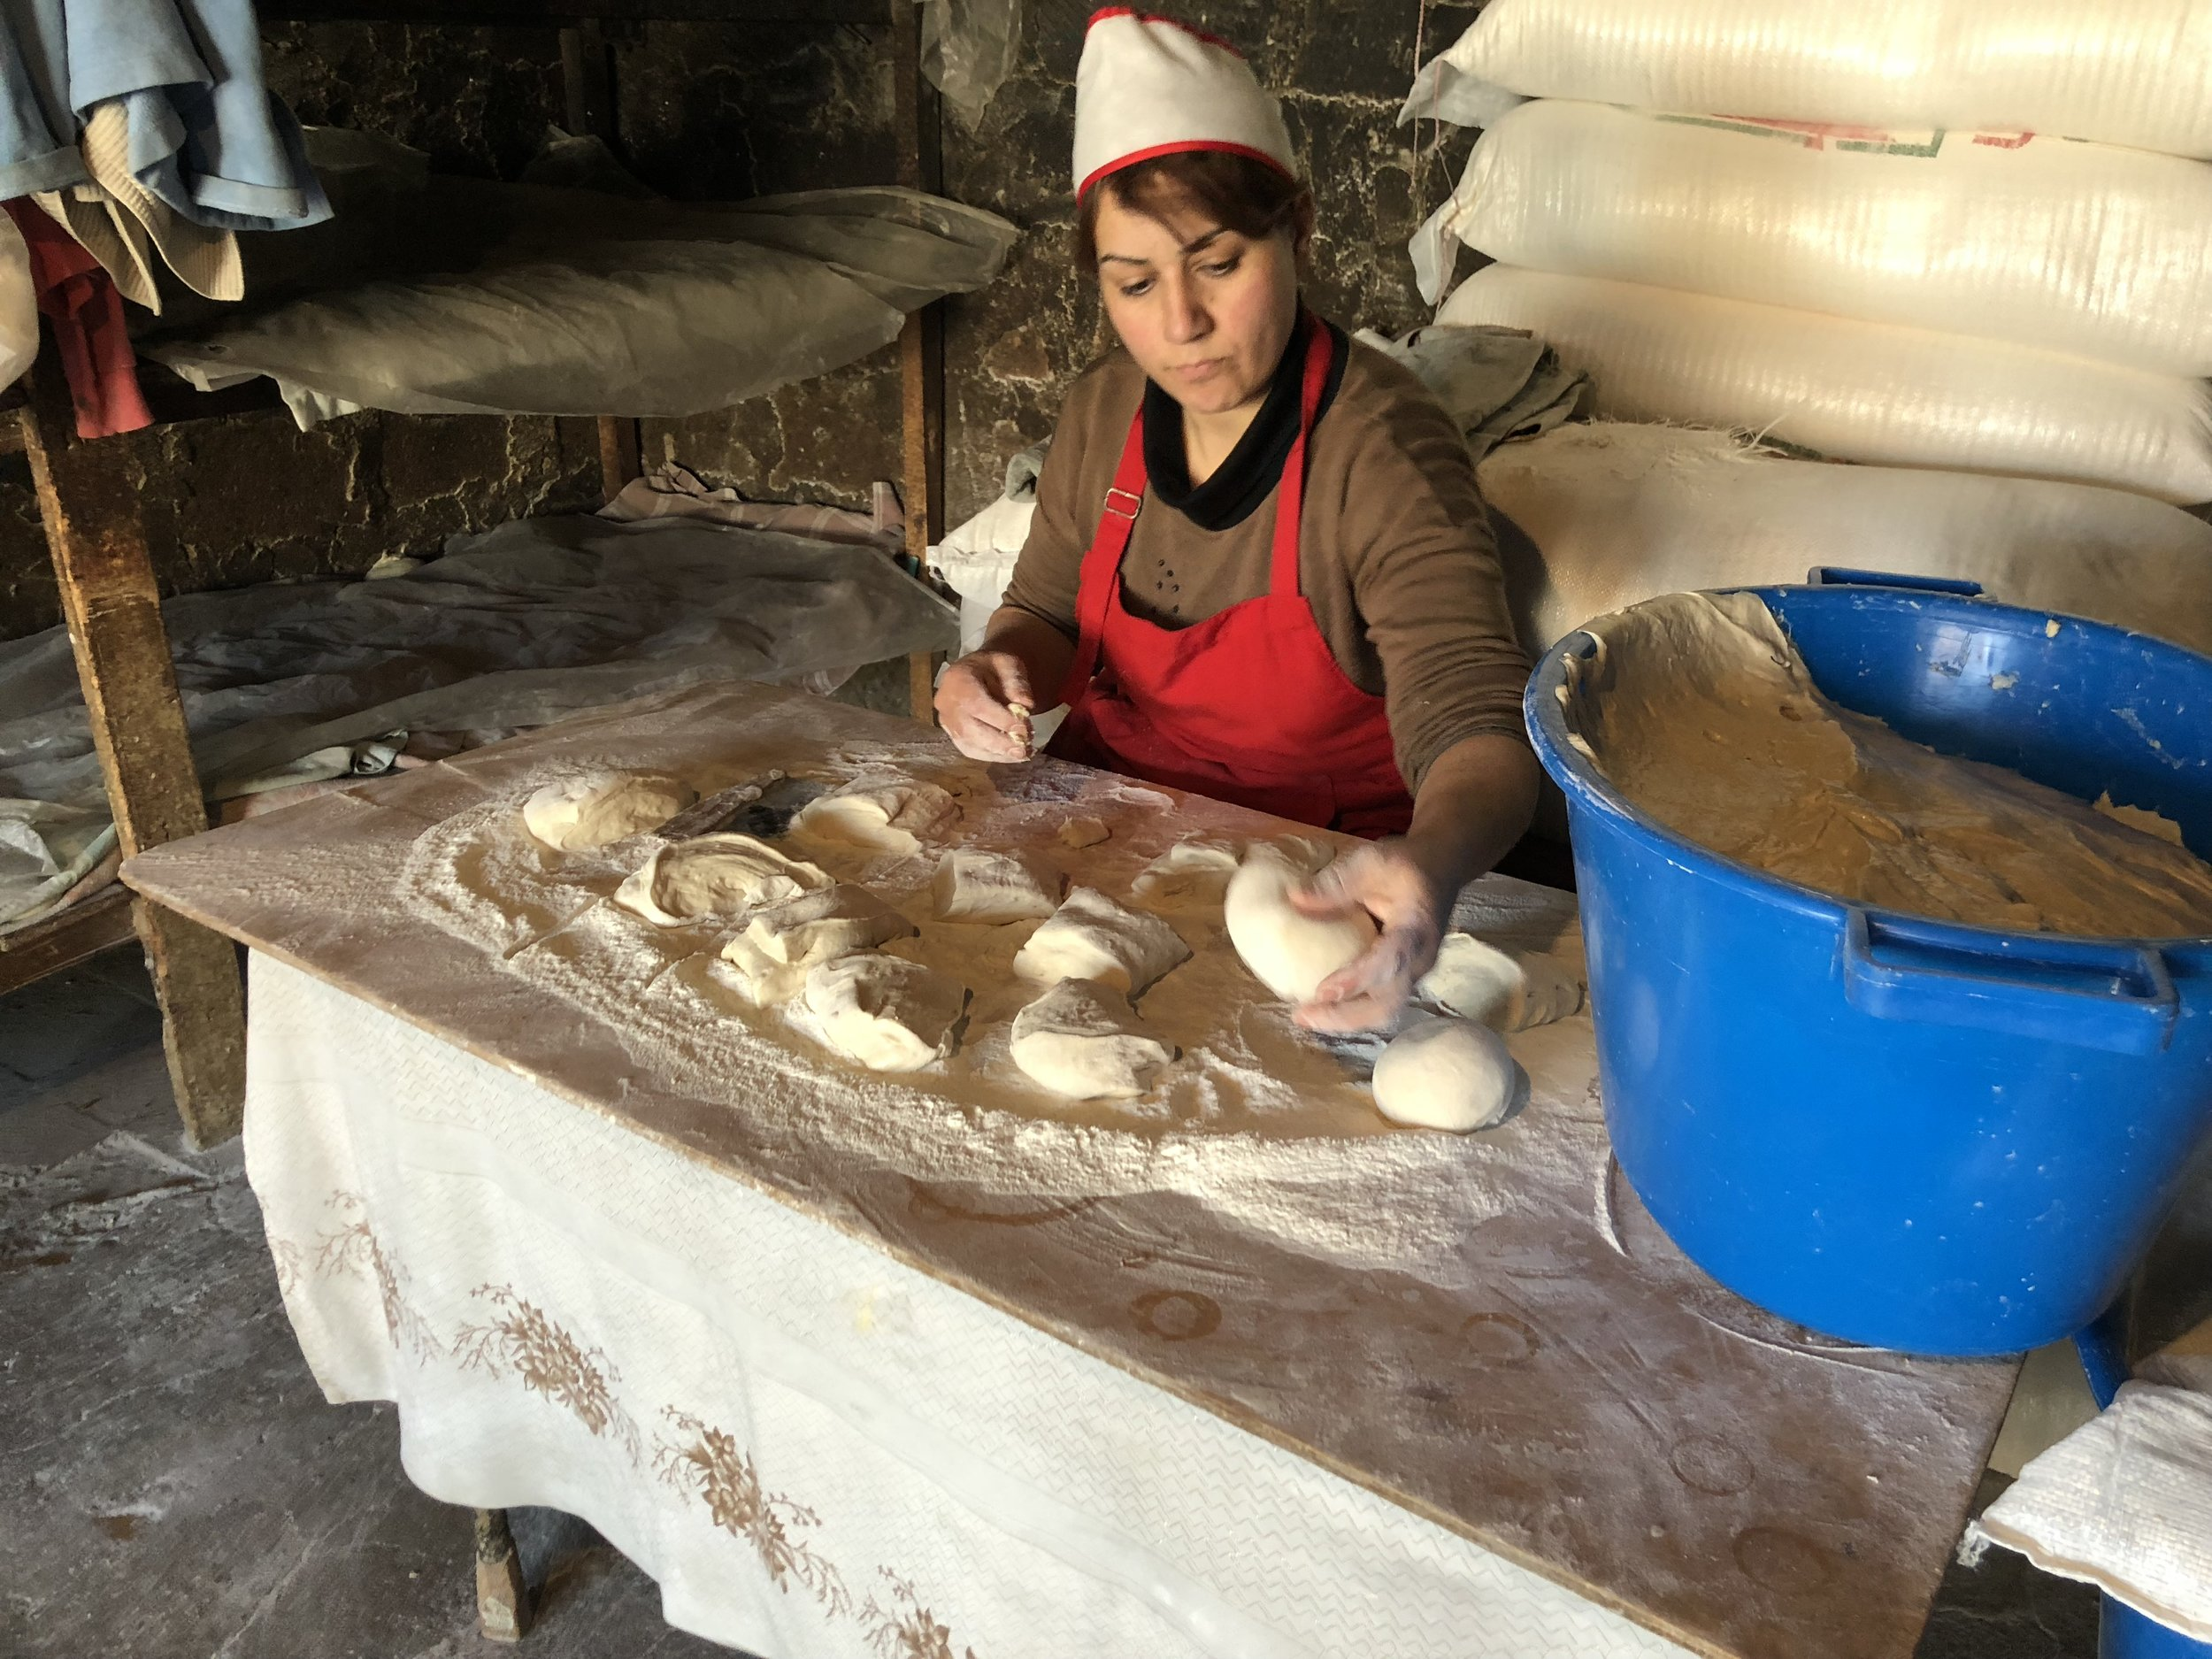 The woman who mixed the dough to make lavash was also responsible for portioning it out, which she could do by eye without the help of a scale.